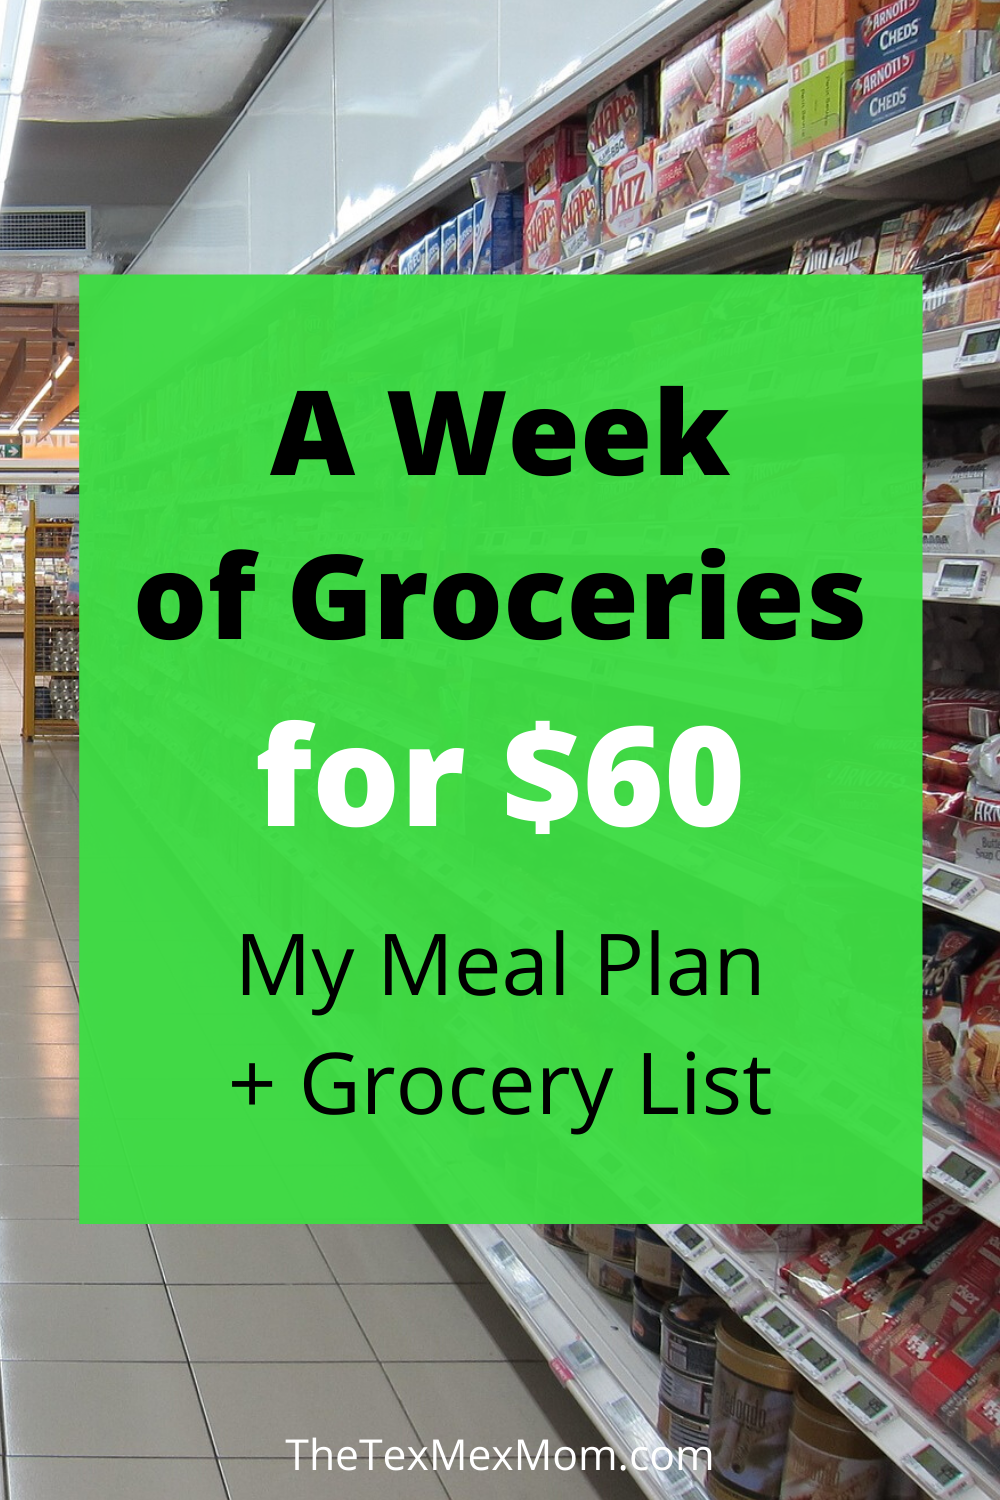 $60 meal plan and grocery list